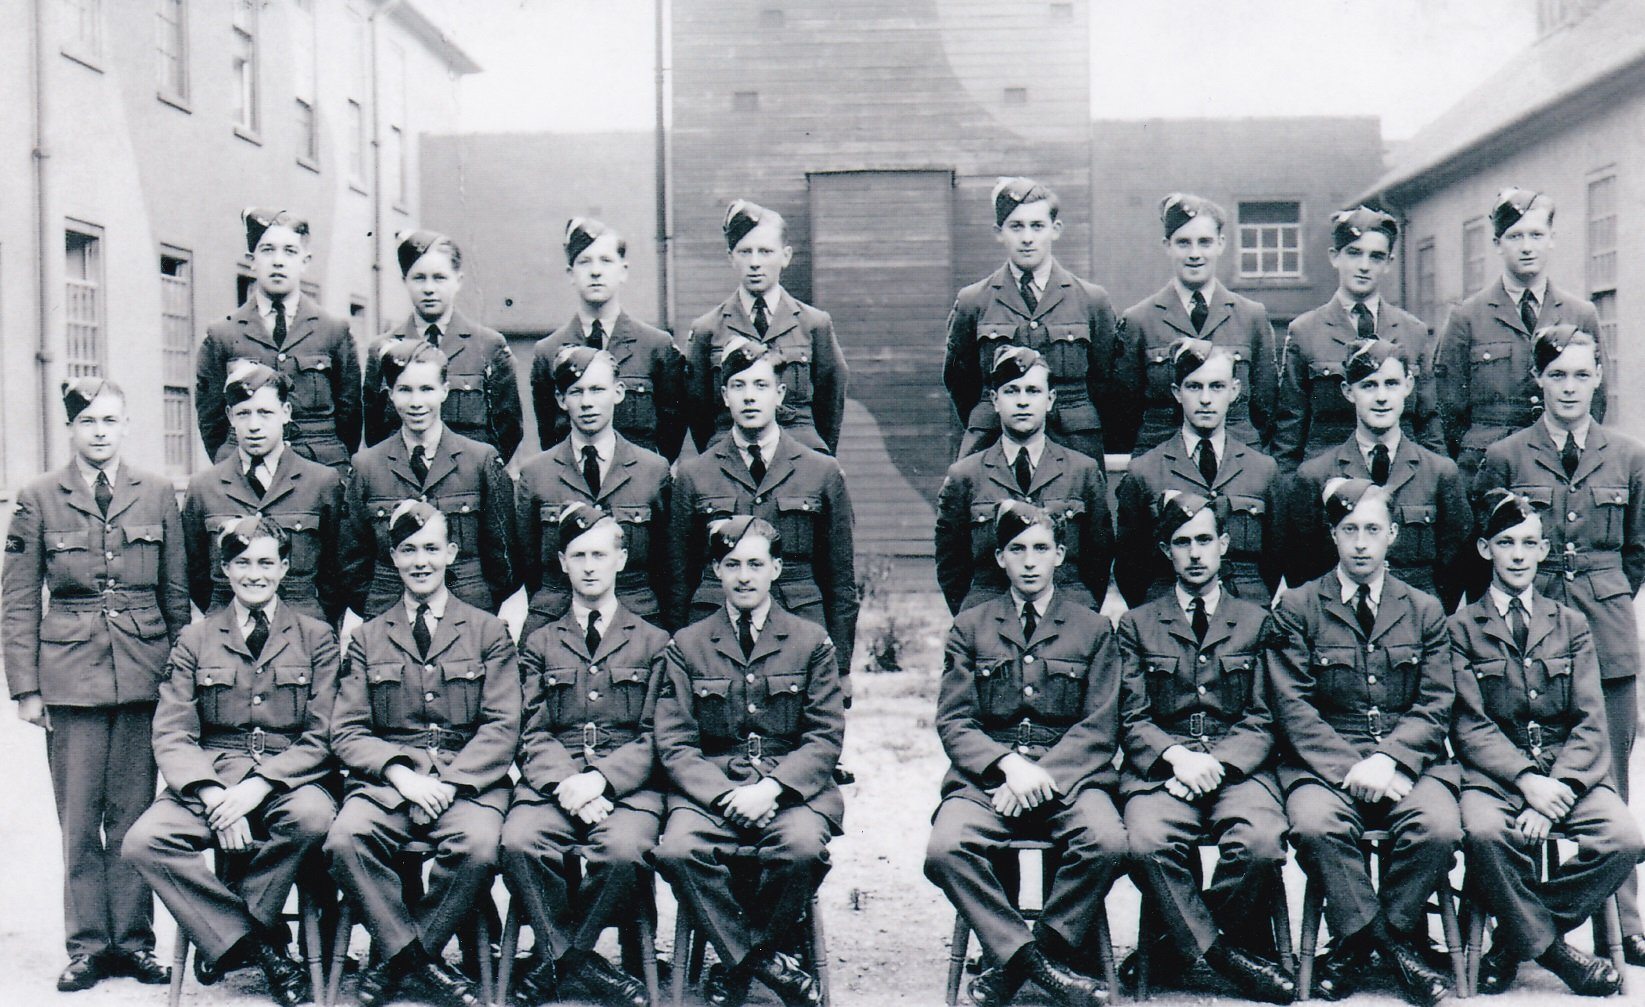 Leslie Jackson's Initial Training photo. Leslie is front row, 3rd from the left.